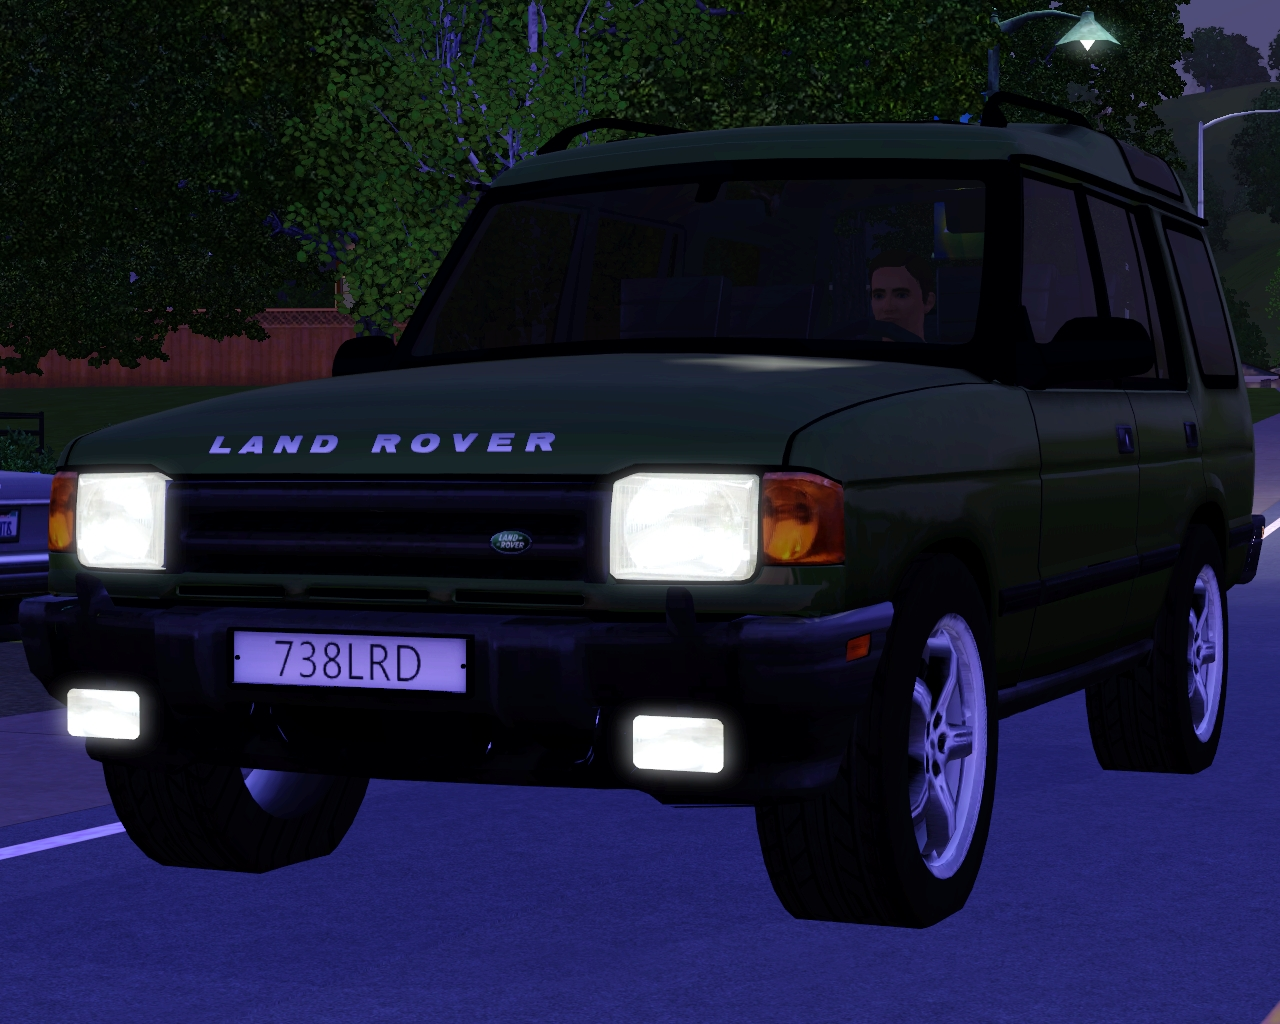 my sims 3 blog 1997 land rover discovery by fresh prince. Black Bedroom Furniture Sets. Home Design Ideas